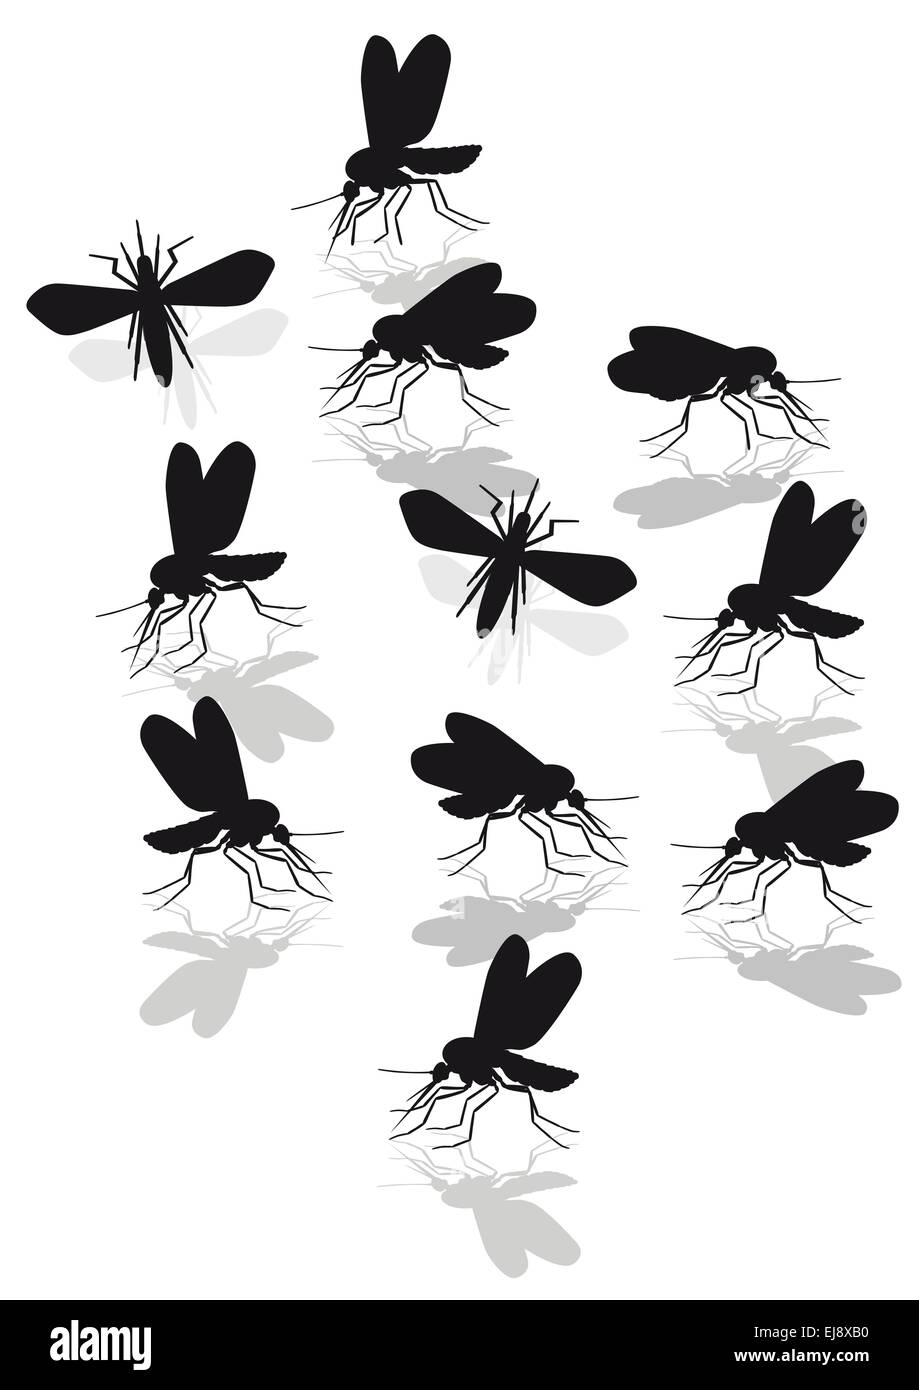 mosquitoes plague Stock Photo